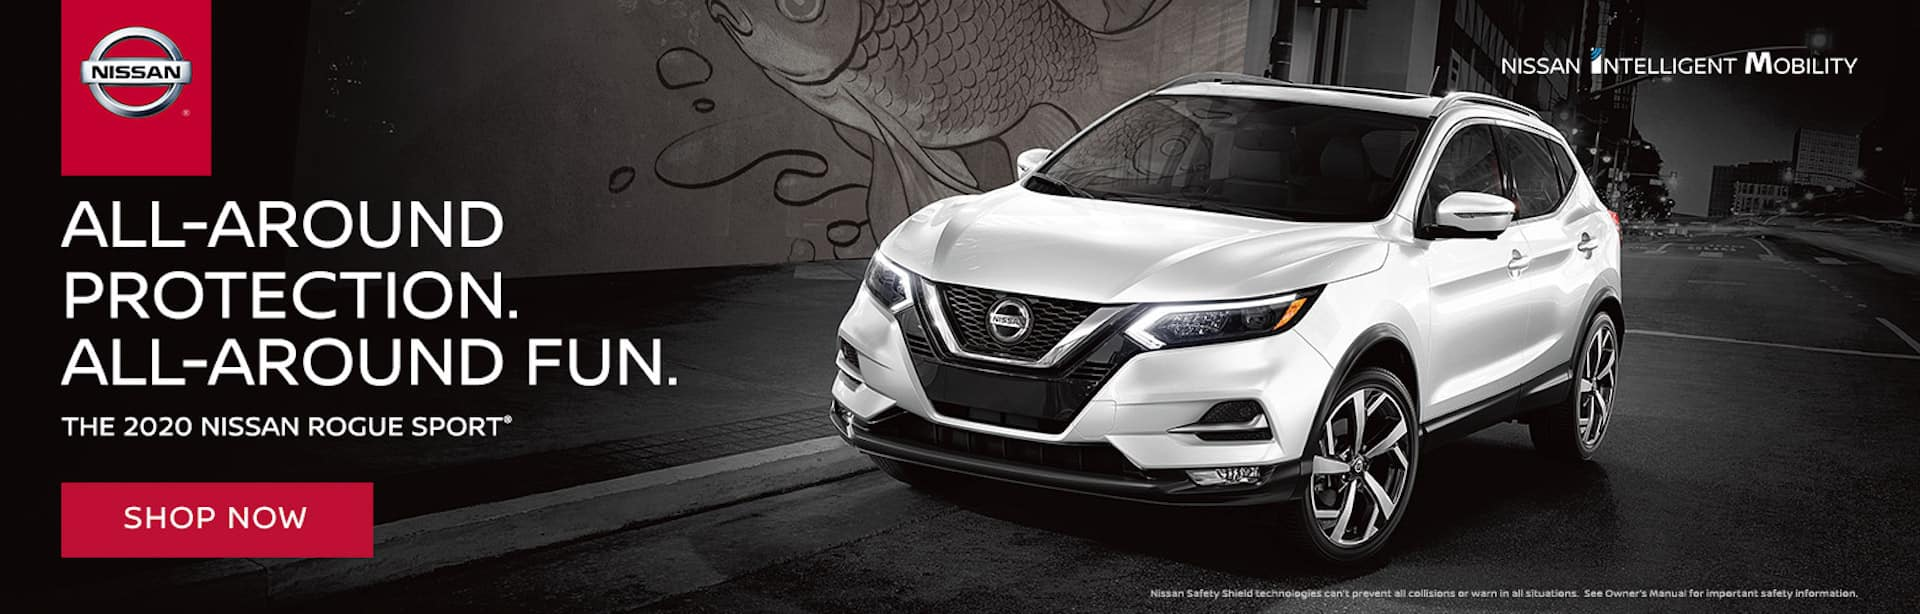 All Around Protection All Around Fun. 2020 Nissan Rogue Sport